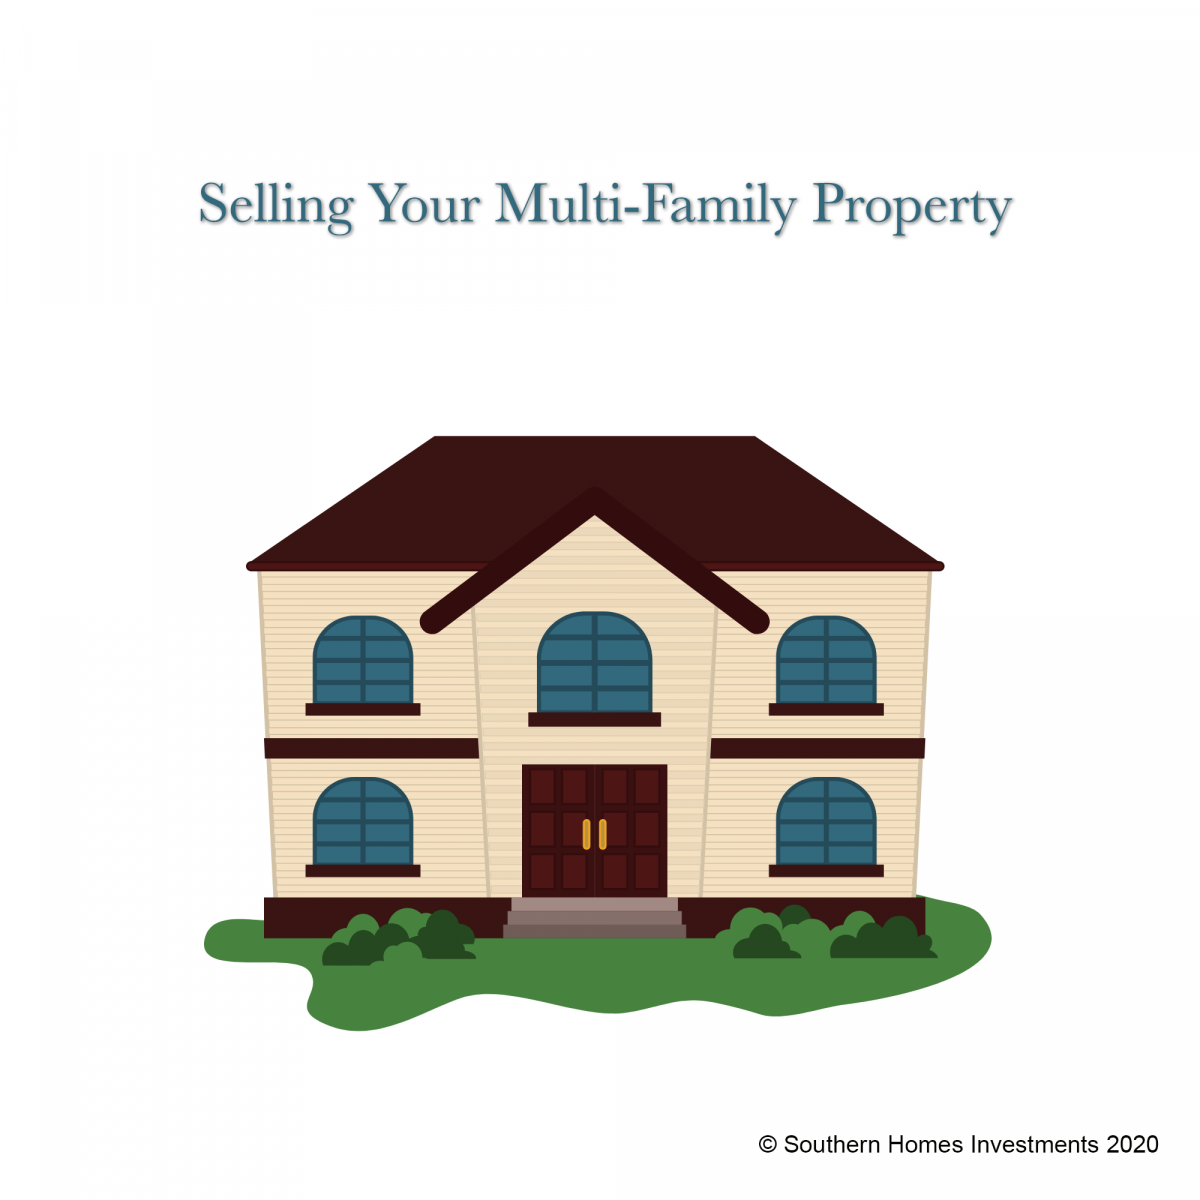 selling-your-multi-family-property-to-an-investor